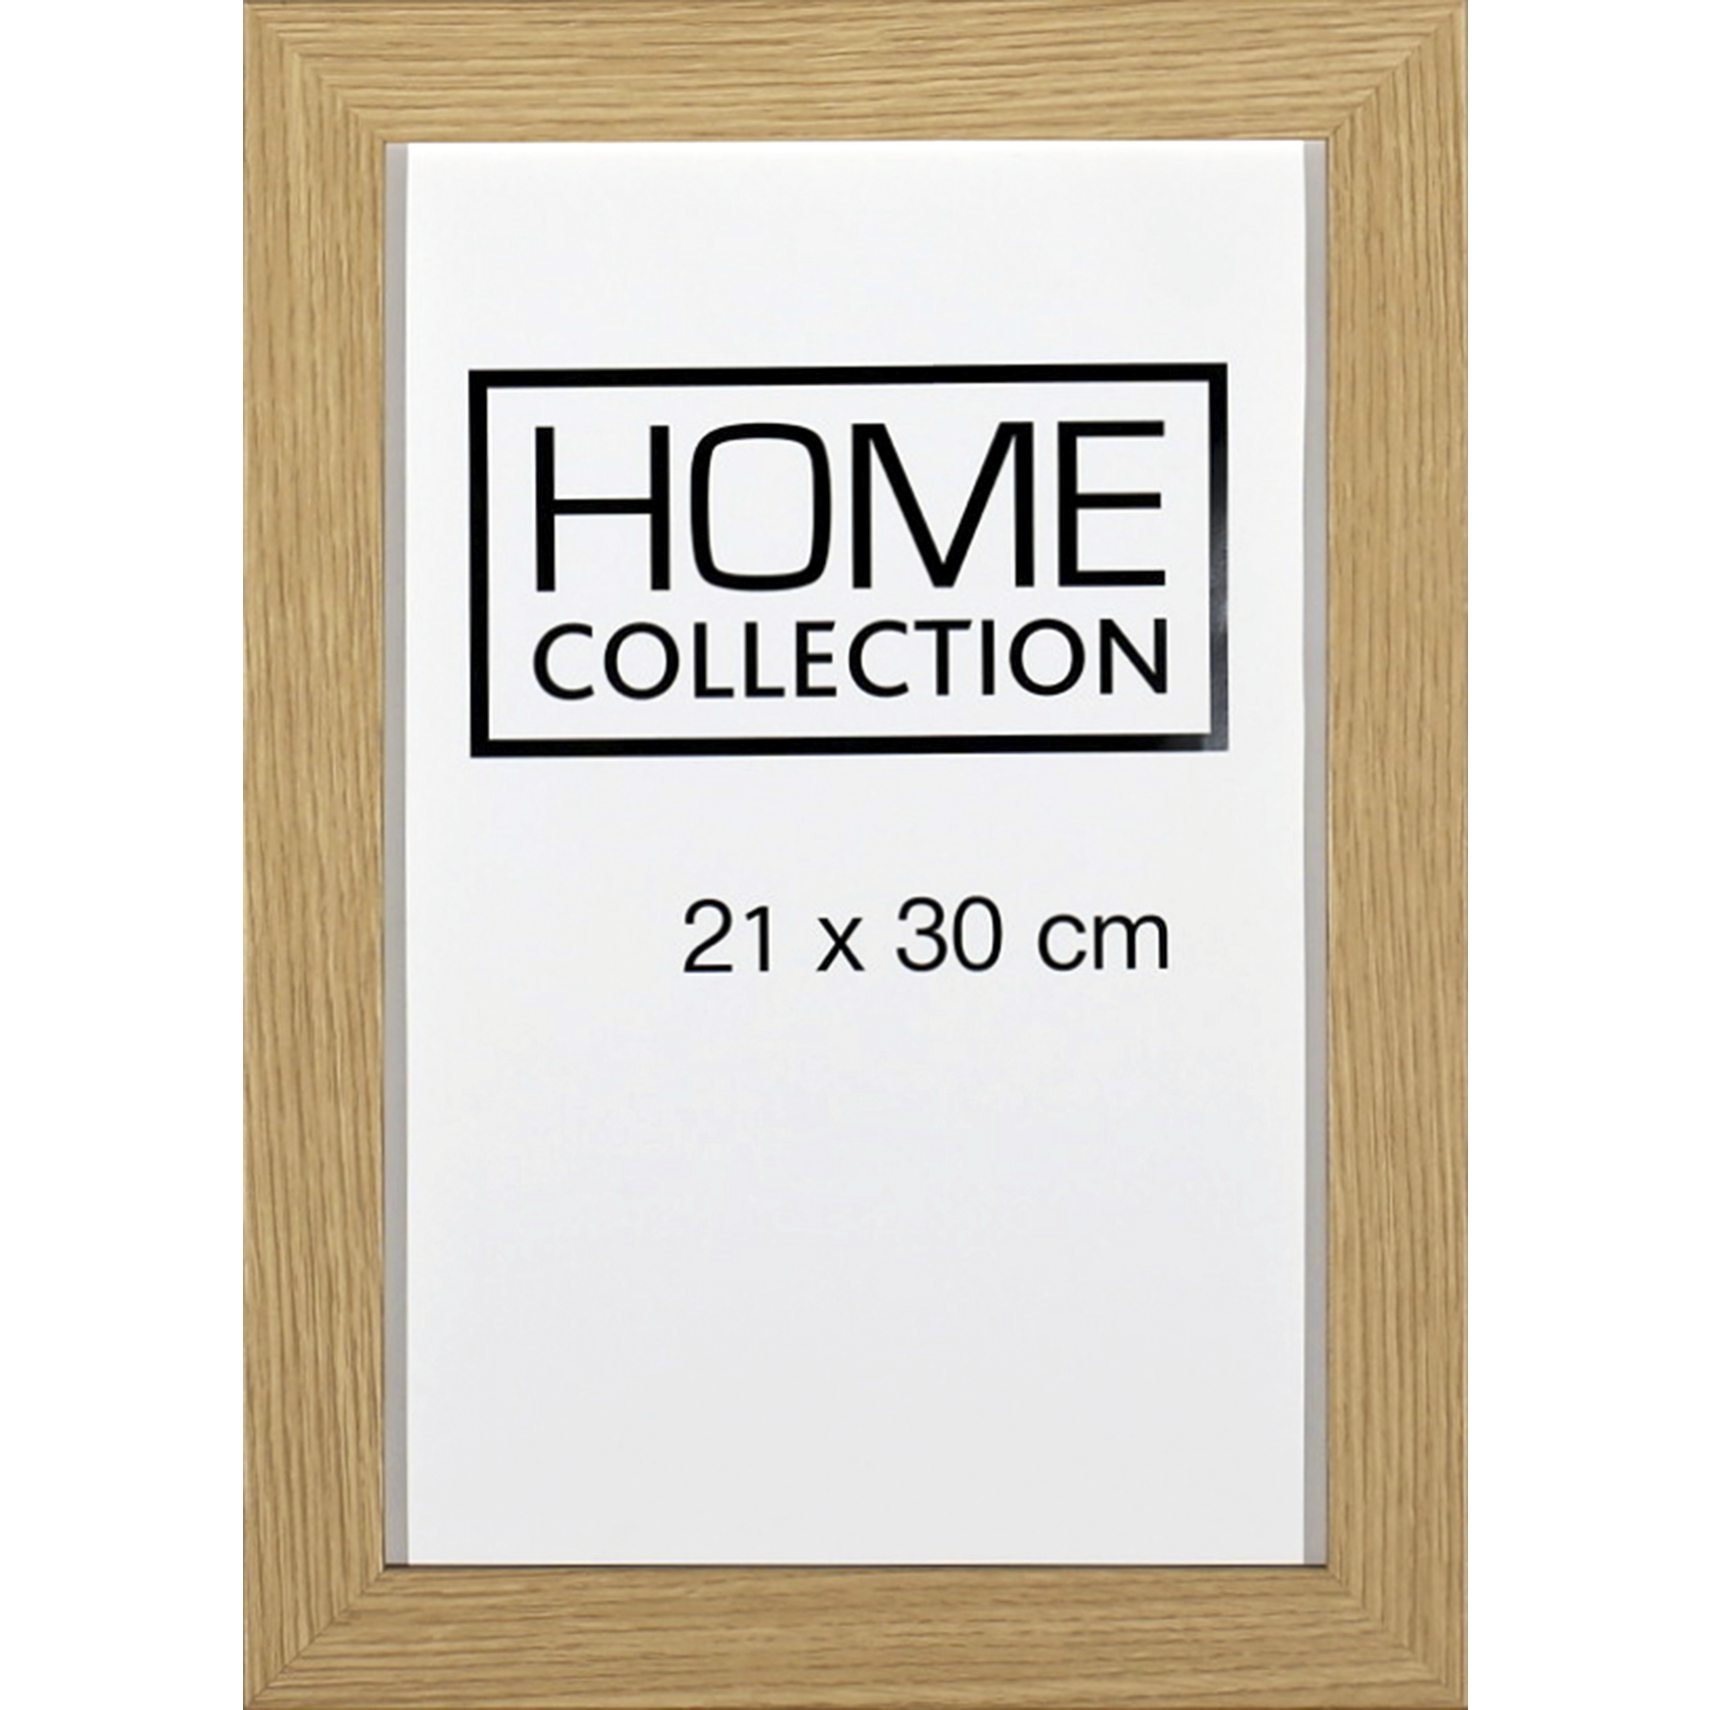 HOME COLLECTION Ramme 21 x 30 x 1 cm - Egetræ ramme